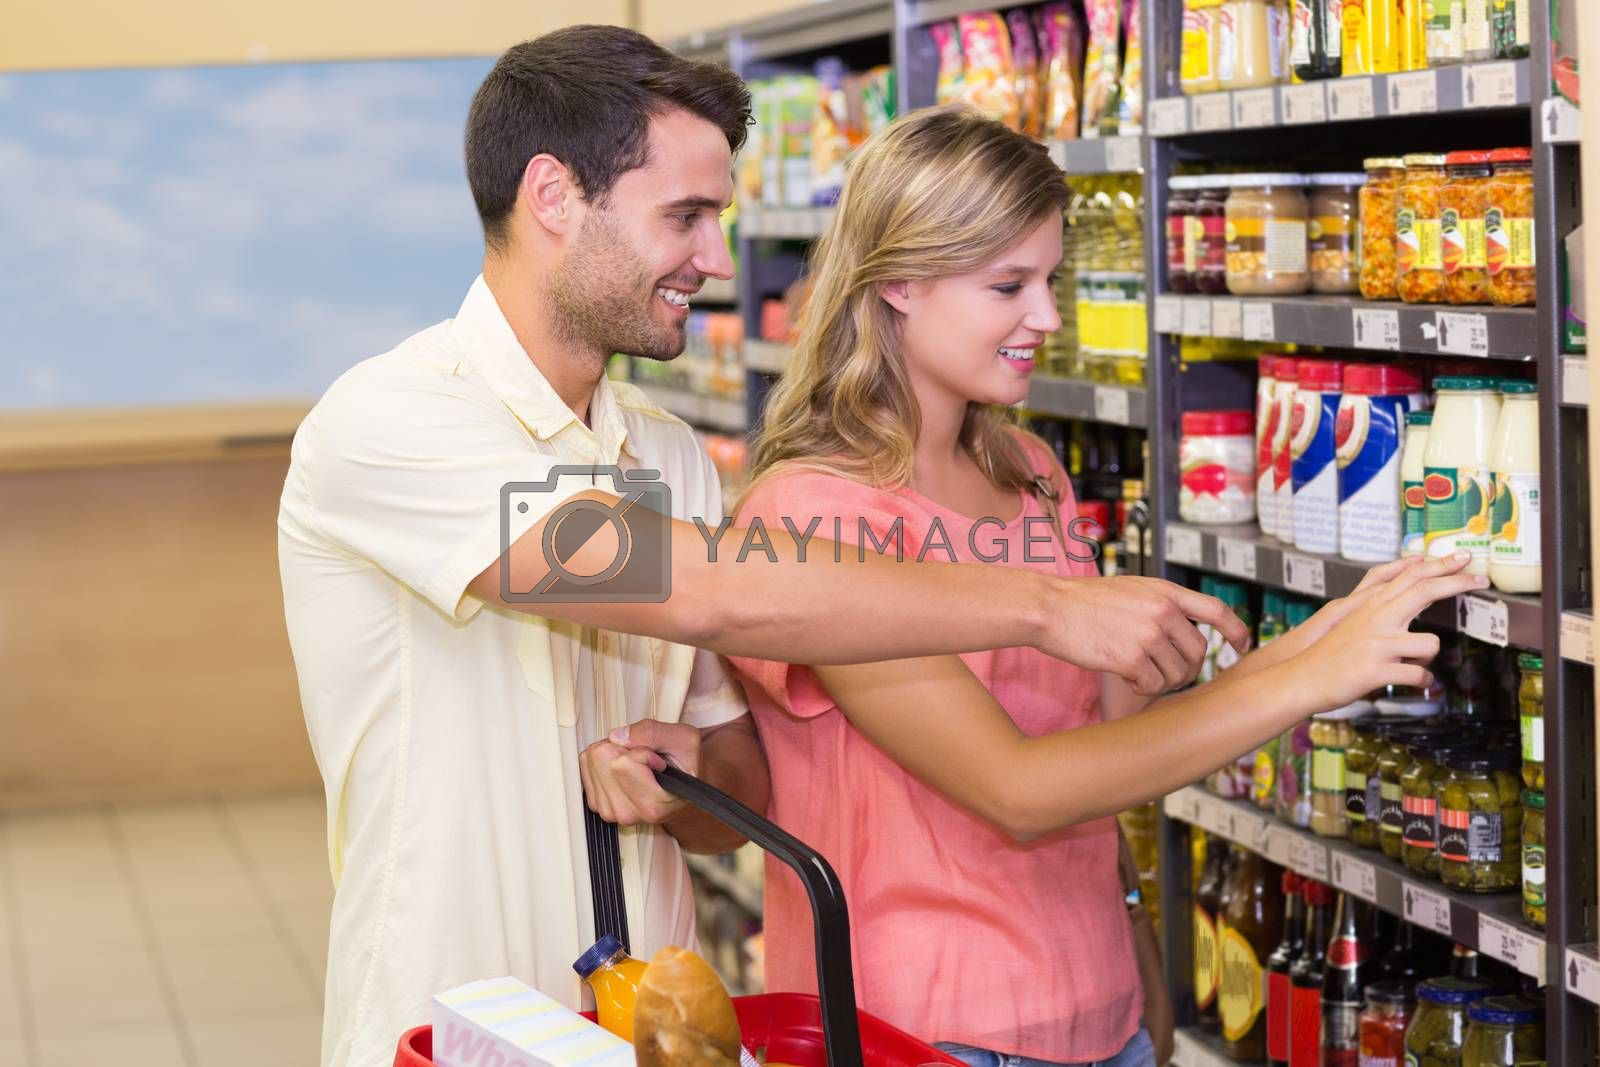 Royalty free image of Smiling bright couple buying food products showing shelf by Wavebreakmedia